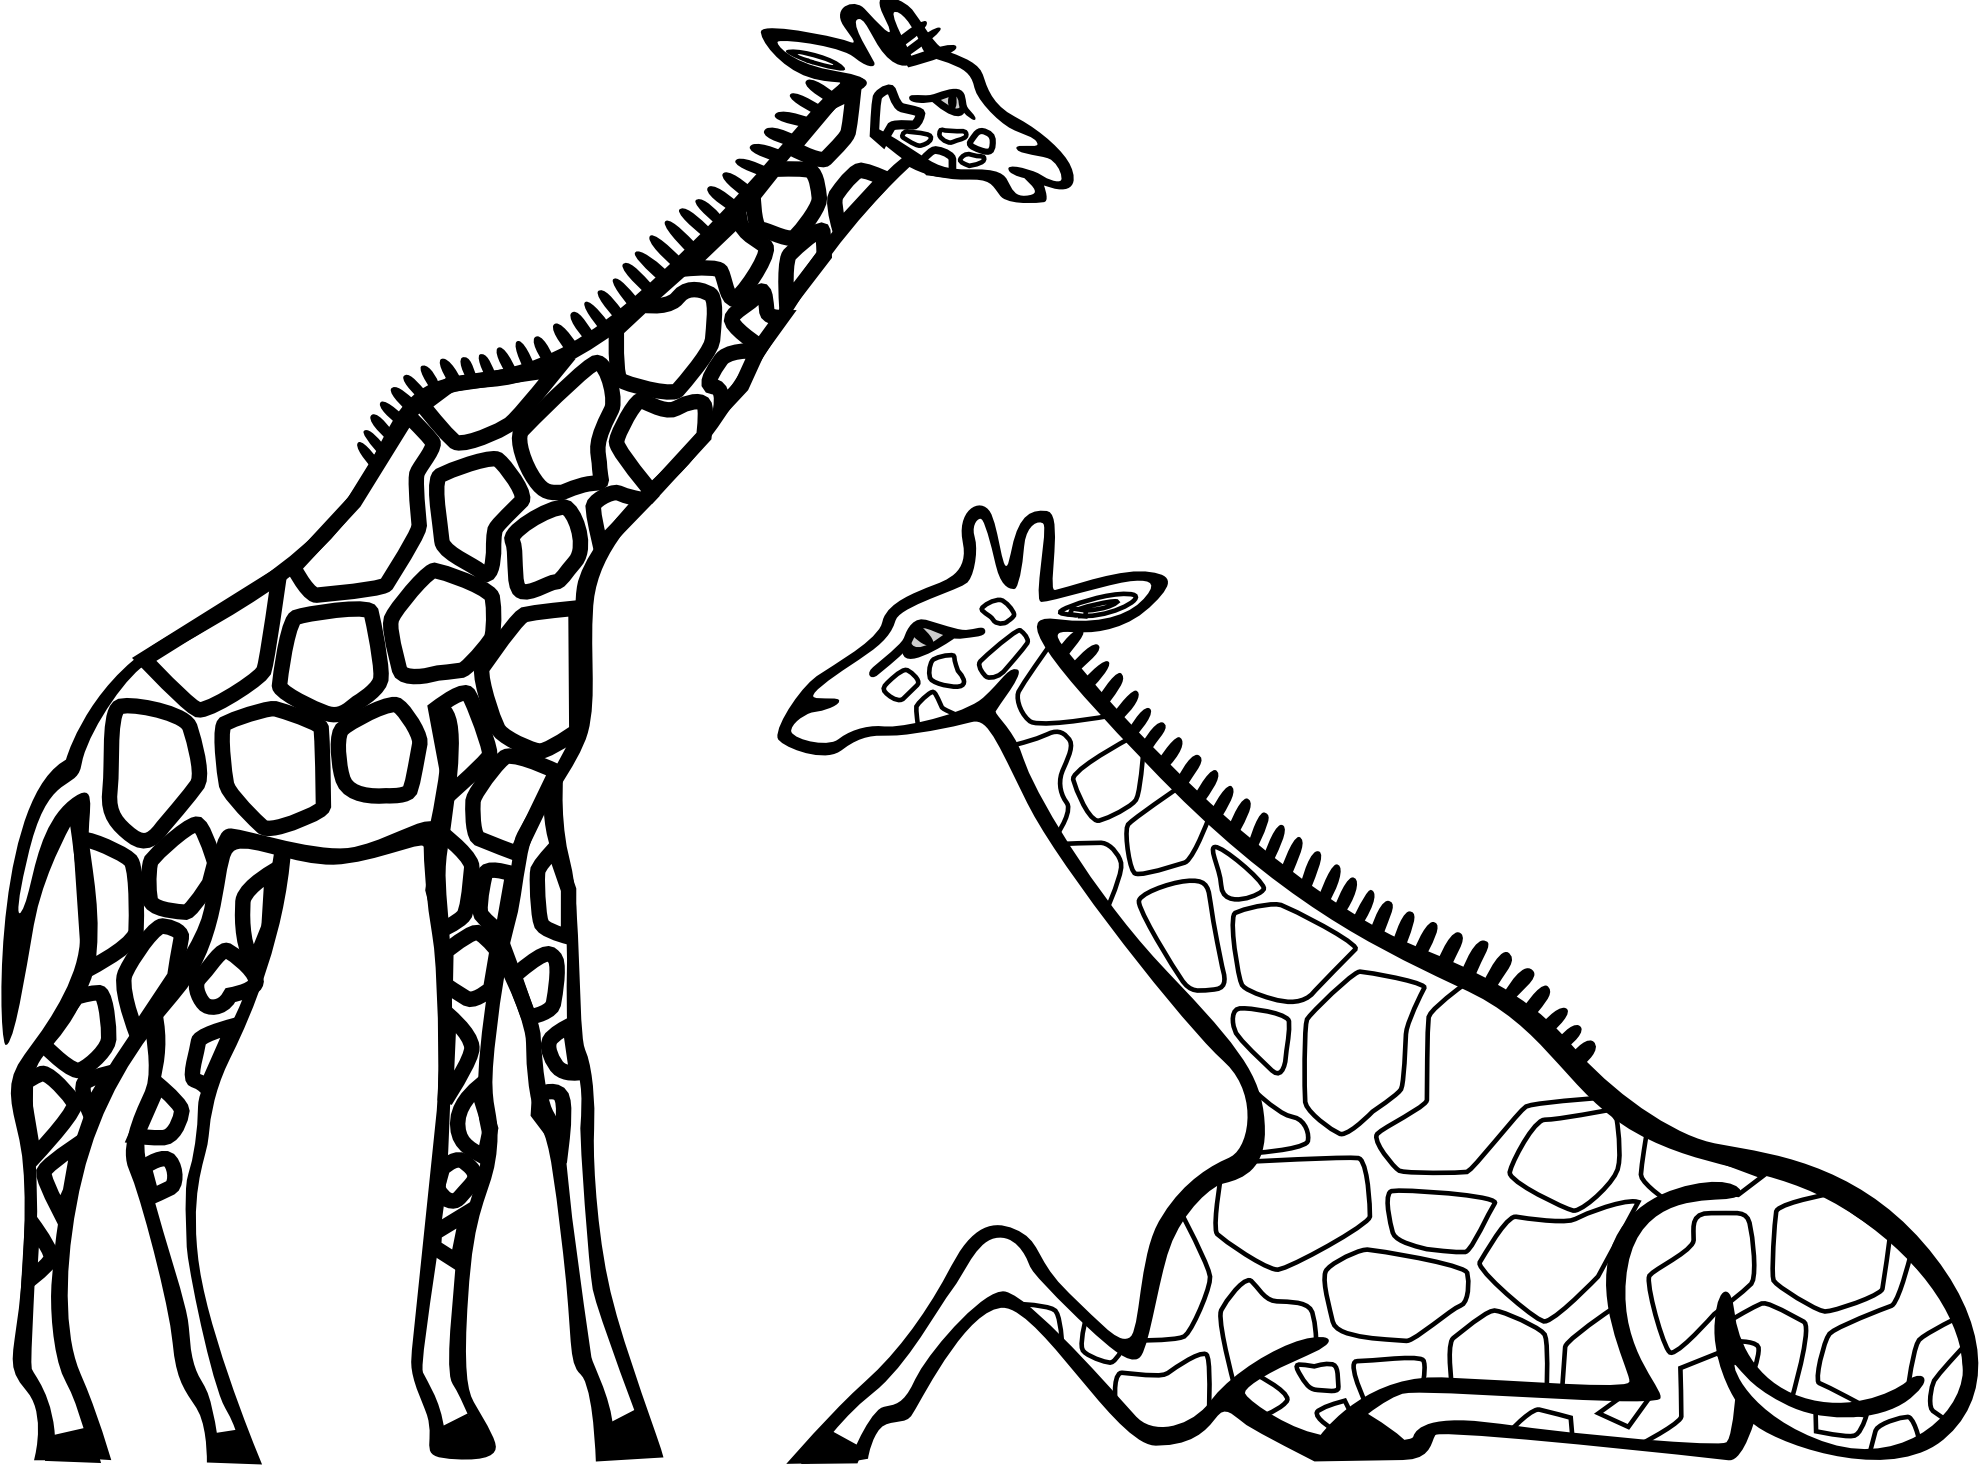 Girrafe drawing colouring. Zebra clipart black and